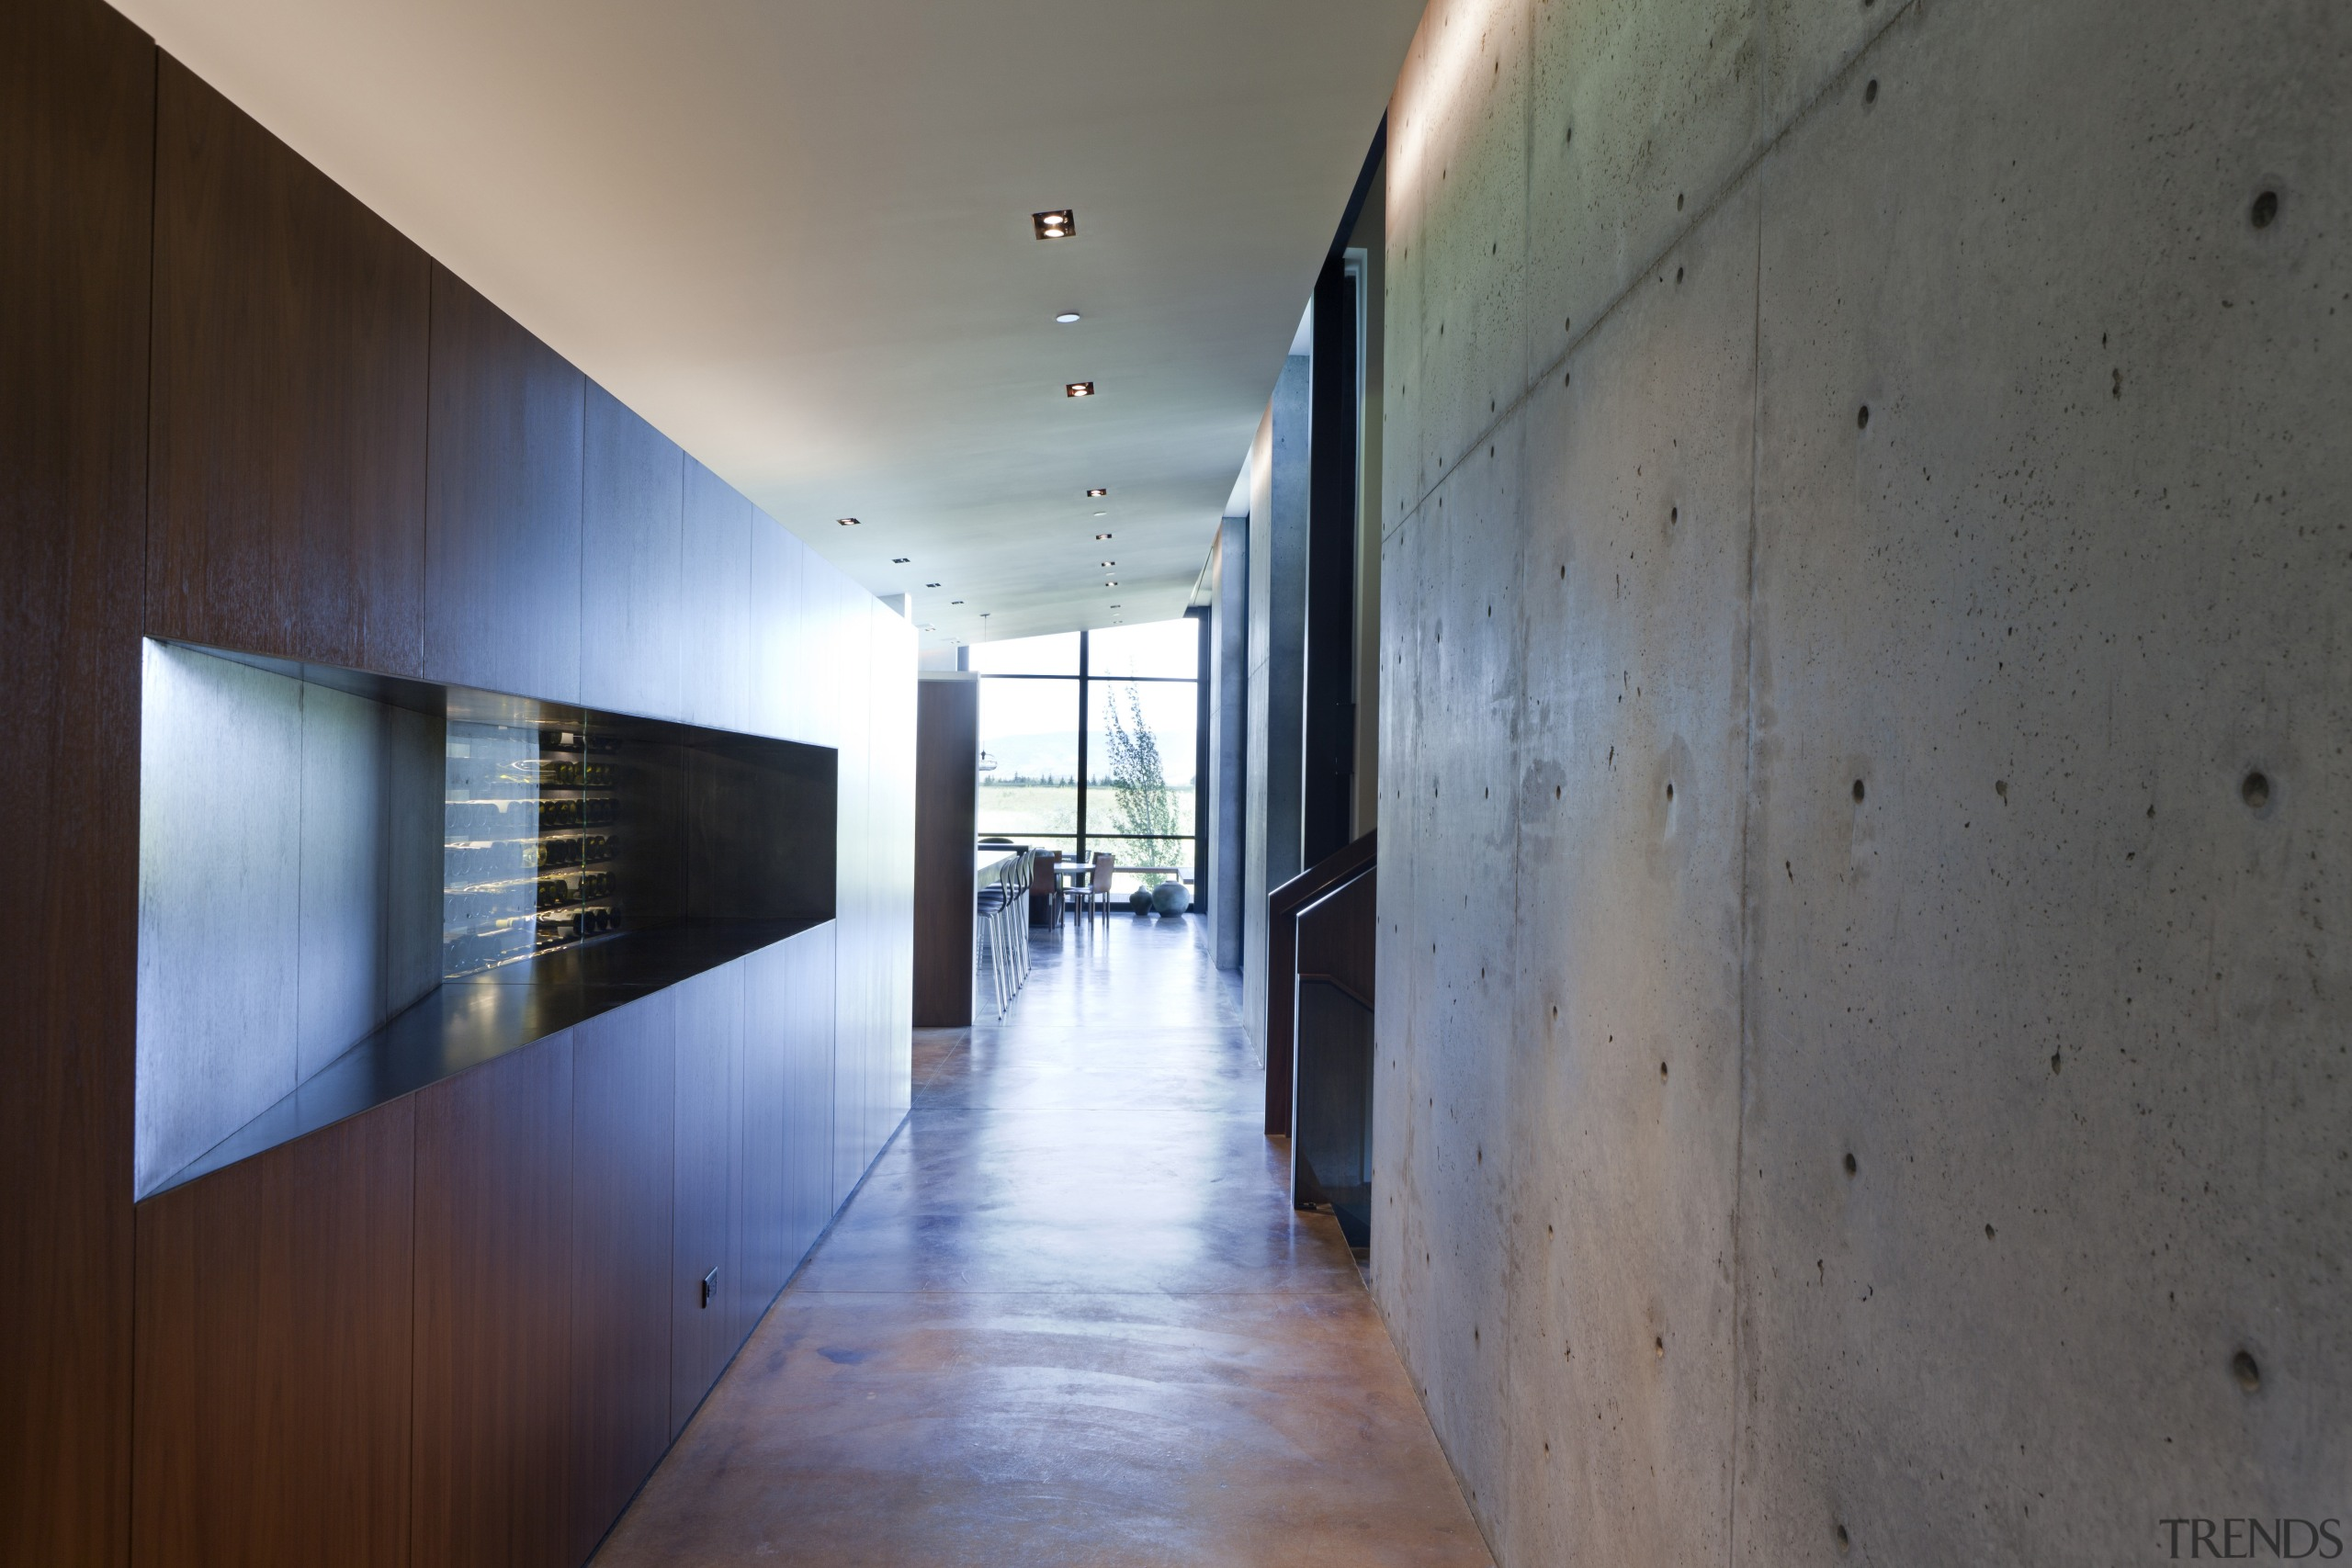 The walnut cabinetry divides the interior  living architecture, daylighting, house, interior design, lobby, wood, gray